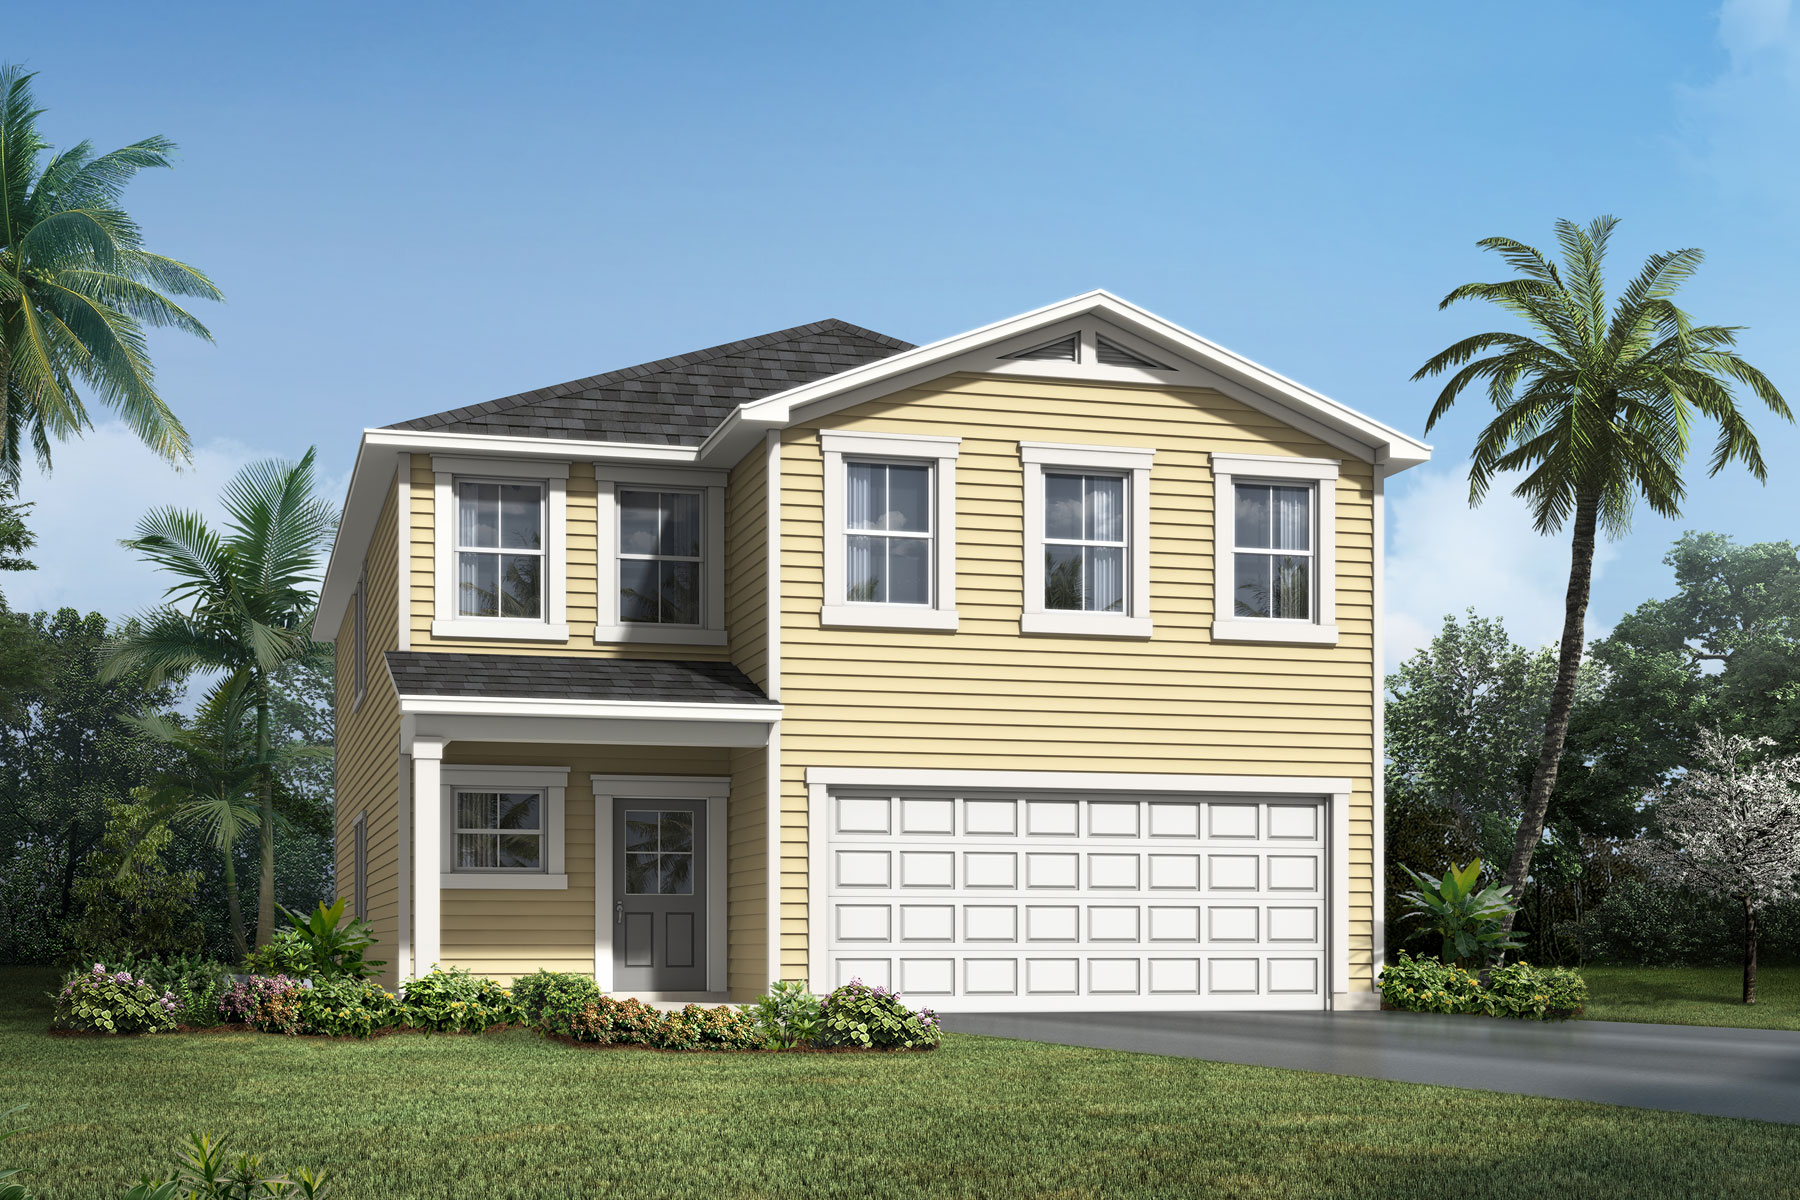 Whitney Plan ElevationLowCountry_WellsCreek_Whitney at Wells Creek in Jacksonville Florida by Mattamy Homes